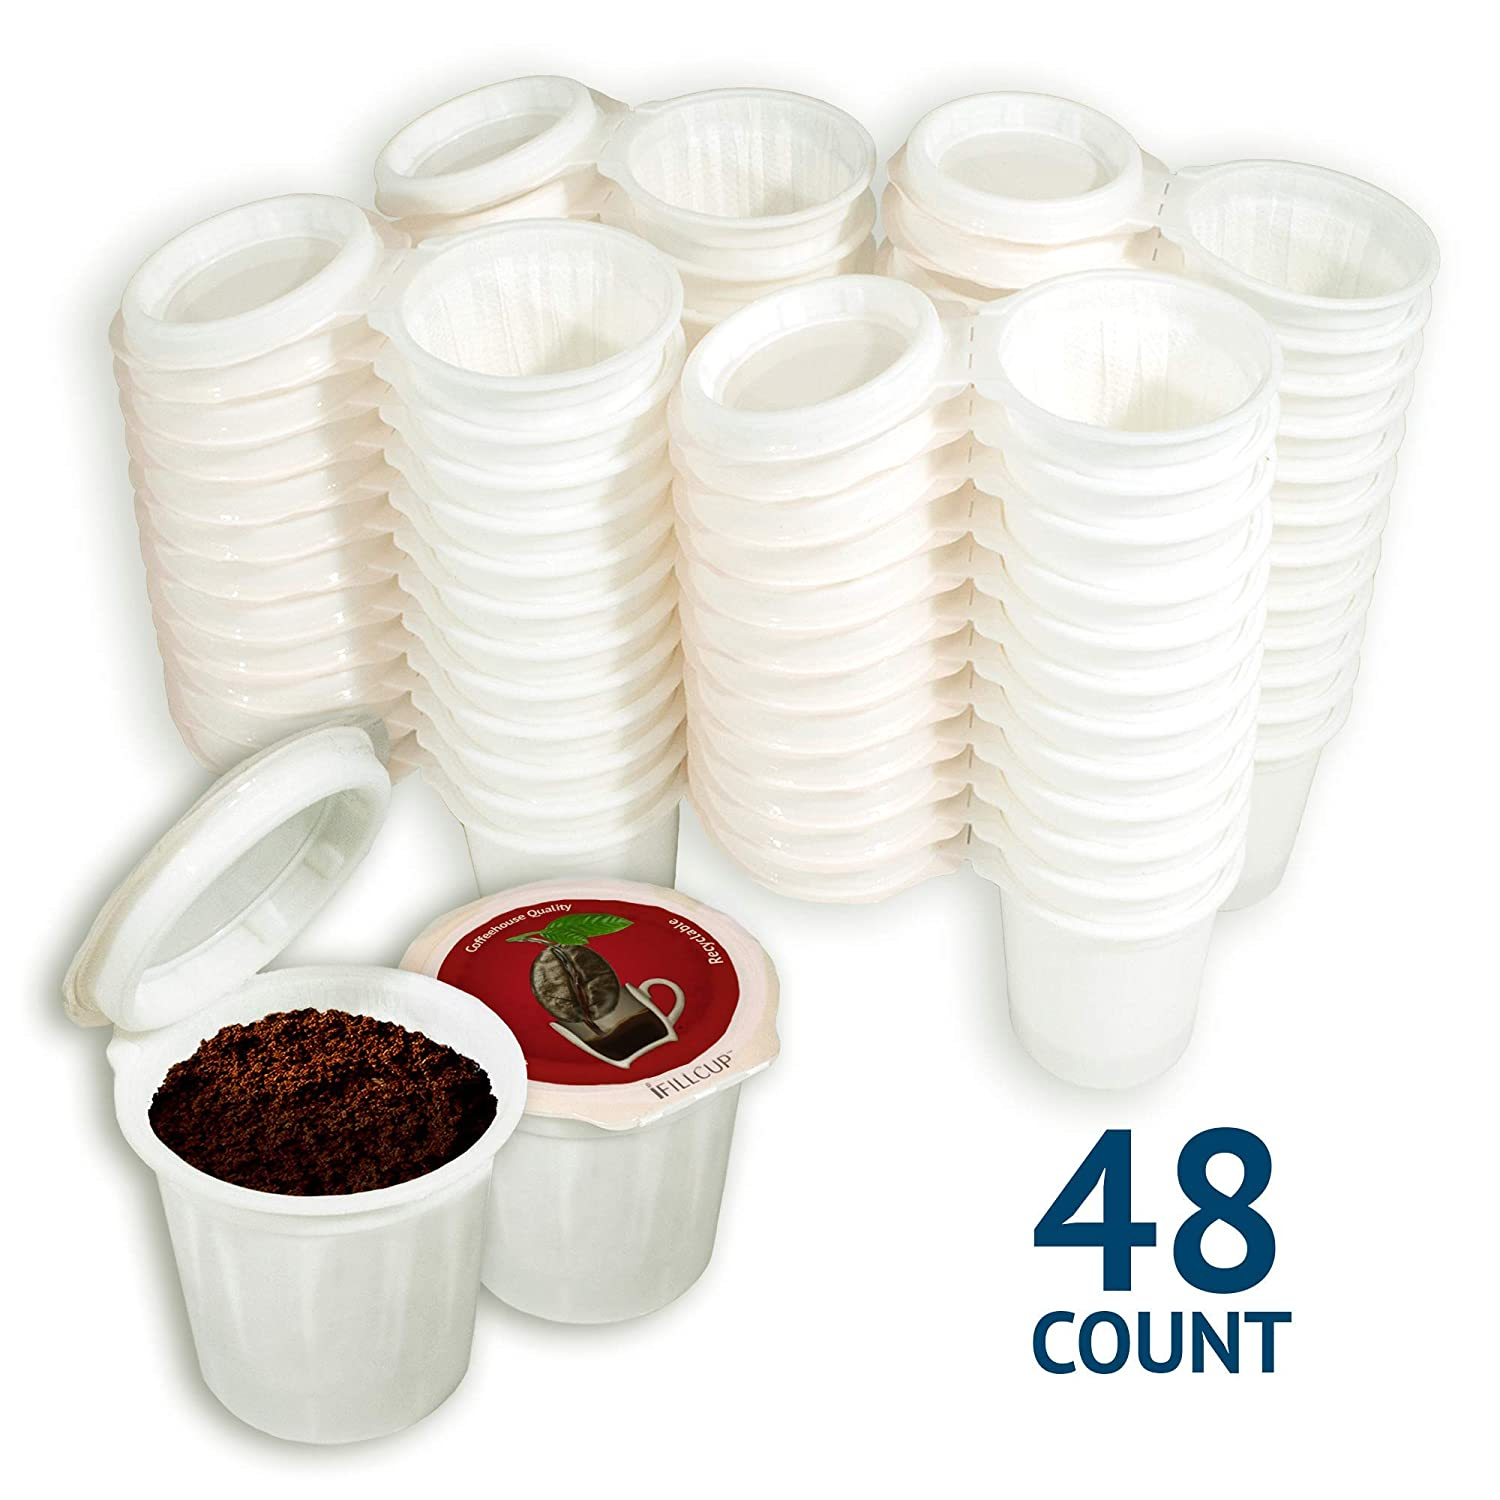 iFillCup pre-assembled Single Serve, fill your own Pods. Red Label. 100% recyclable for use in all k cup brewers including 1.0 & 2.0 Keurig. 48 iFill Cup airtight seal in freshness pods. (Red)